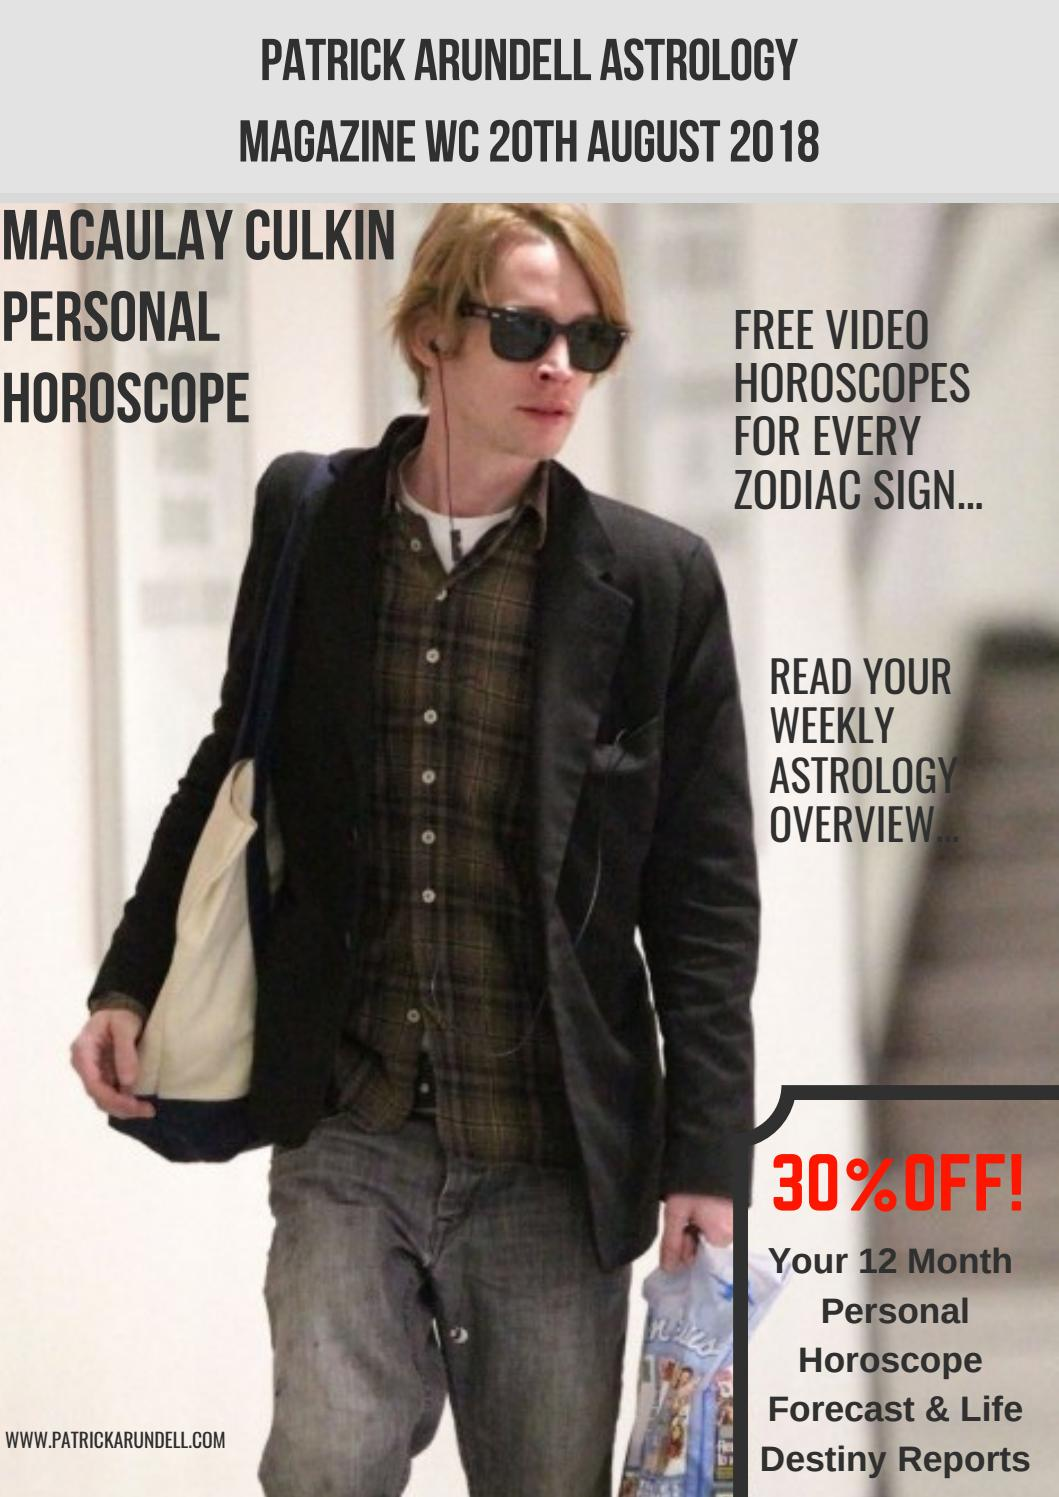 Patrick Arundell Astrology Magazine WC 20th August, 2018 by Patrick